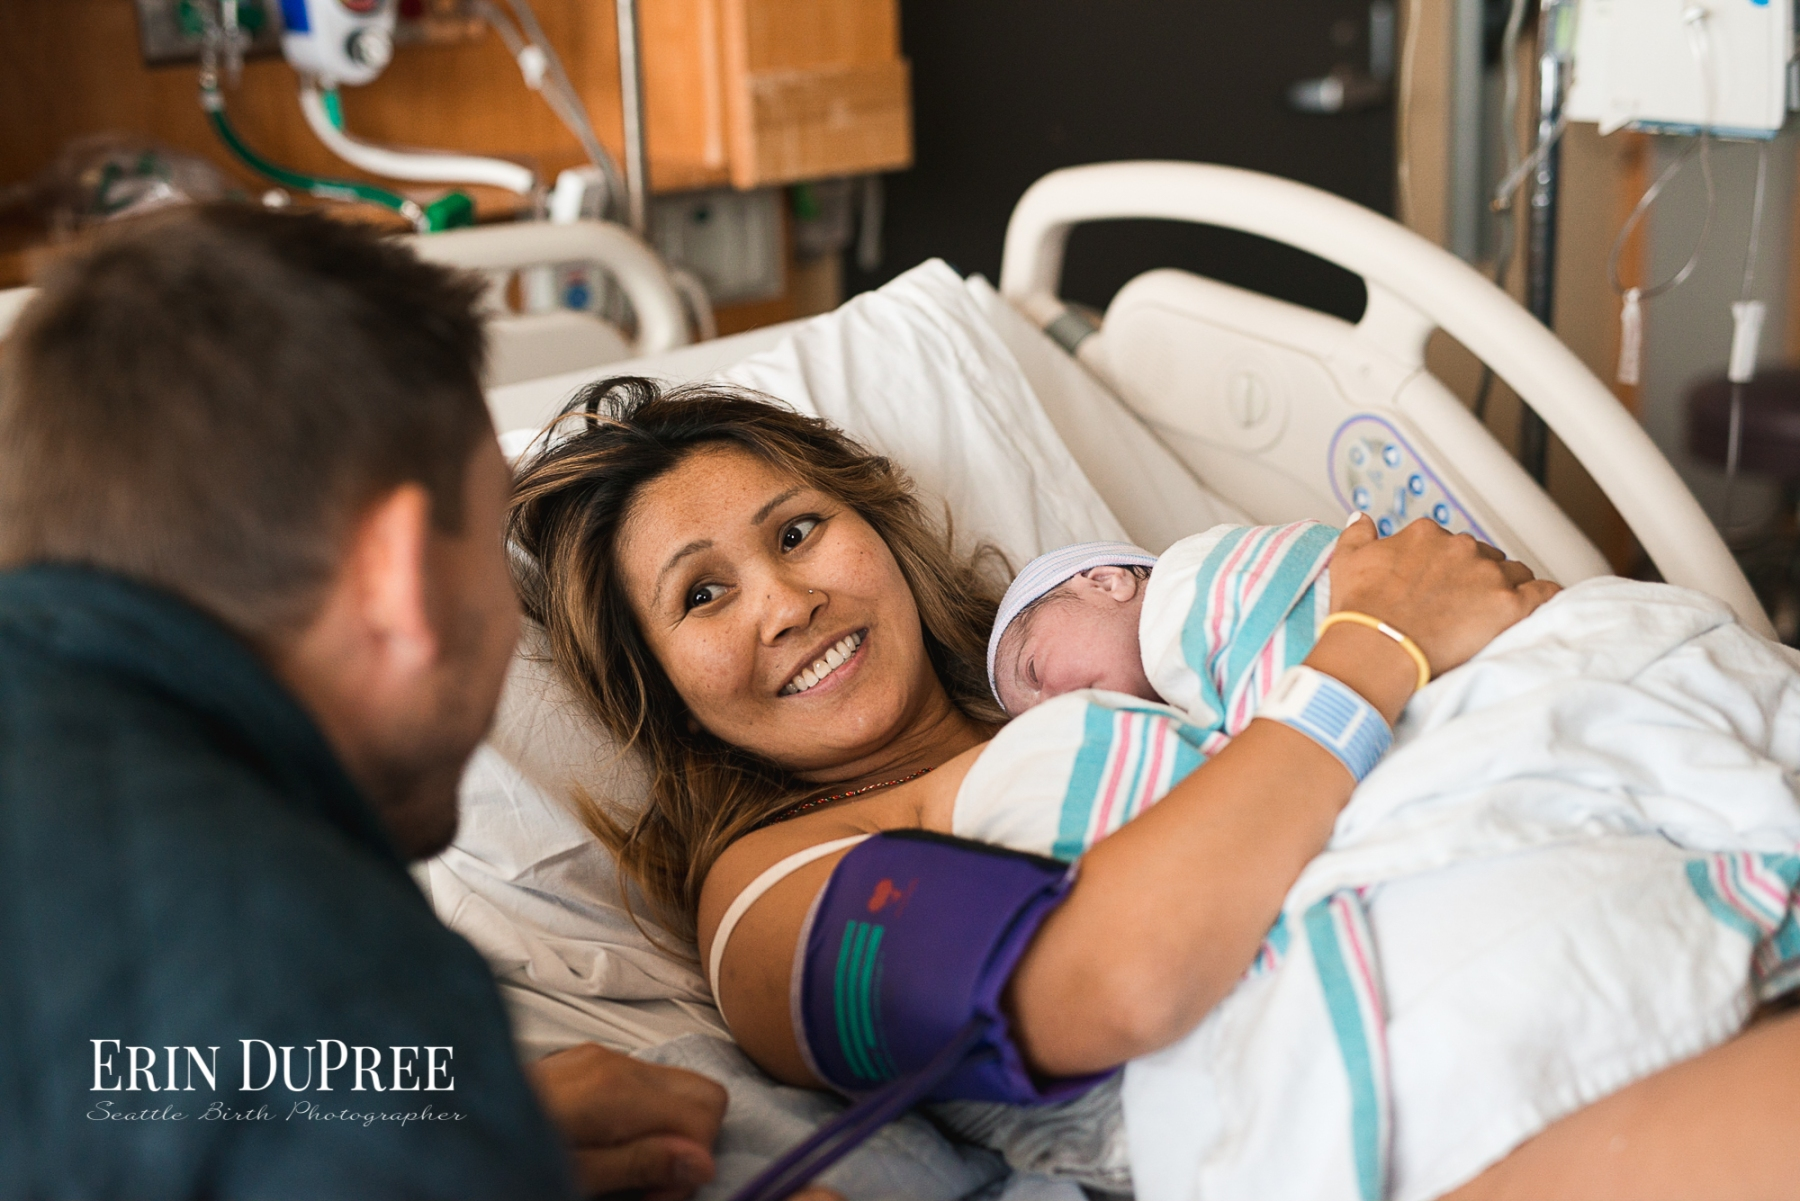 Mom smiling holding newborn baby in hospital by Seattle Birth Photographer